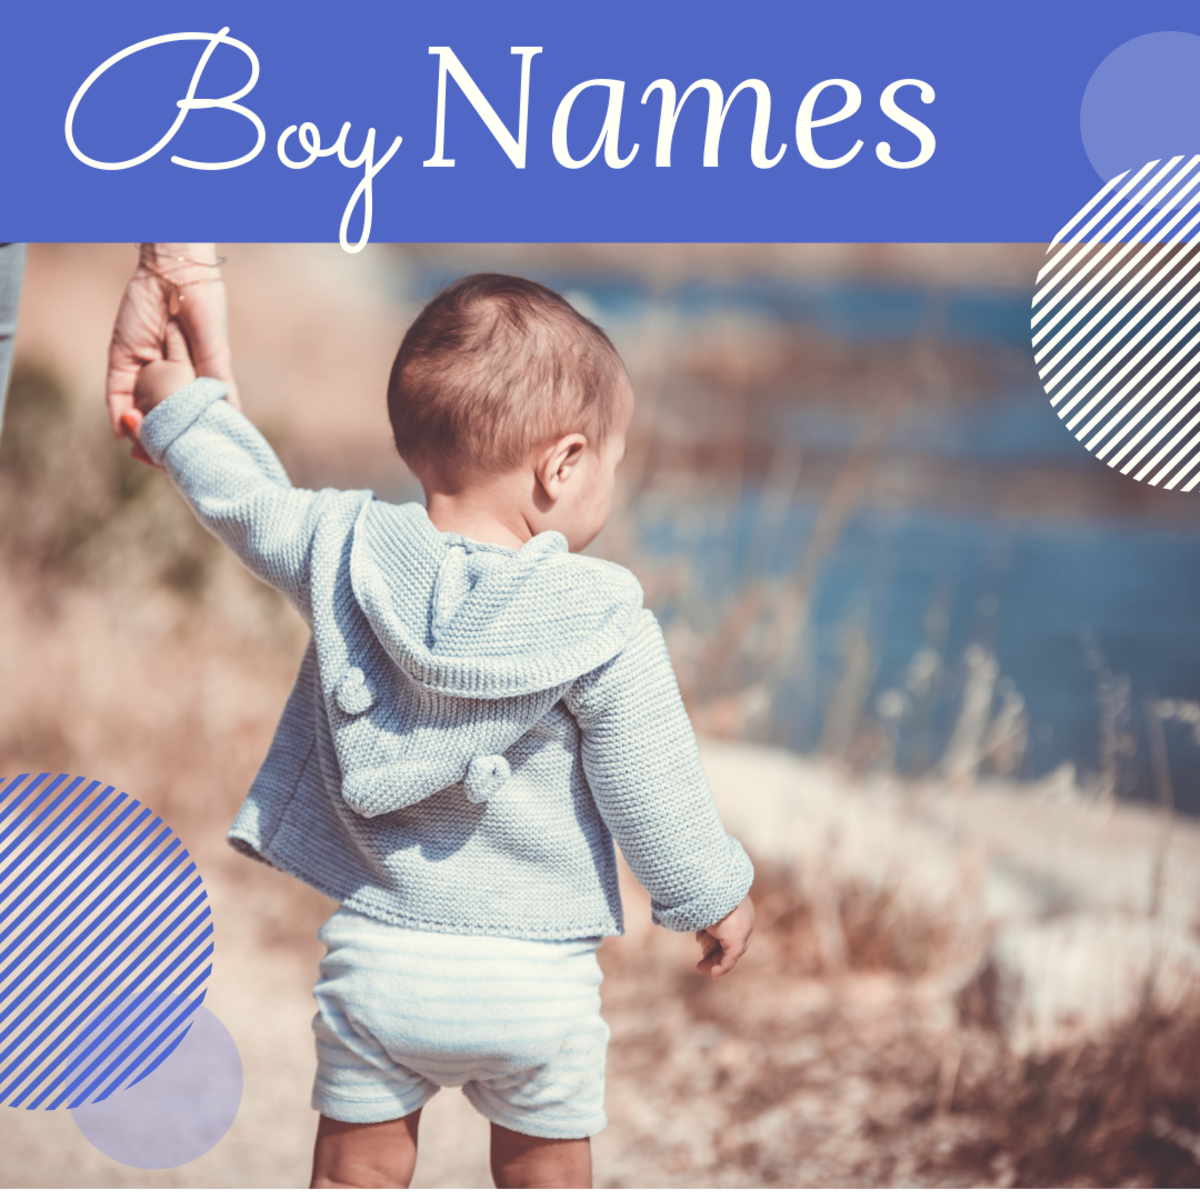 Boy Names/Male Names